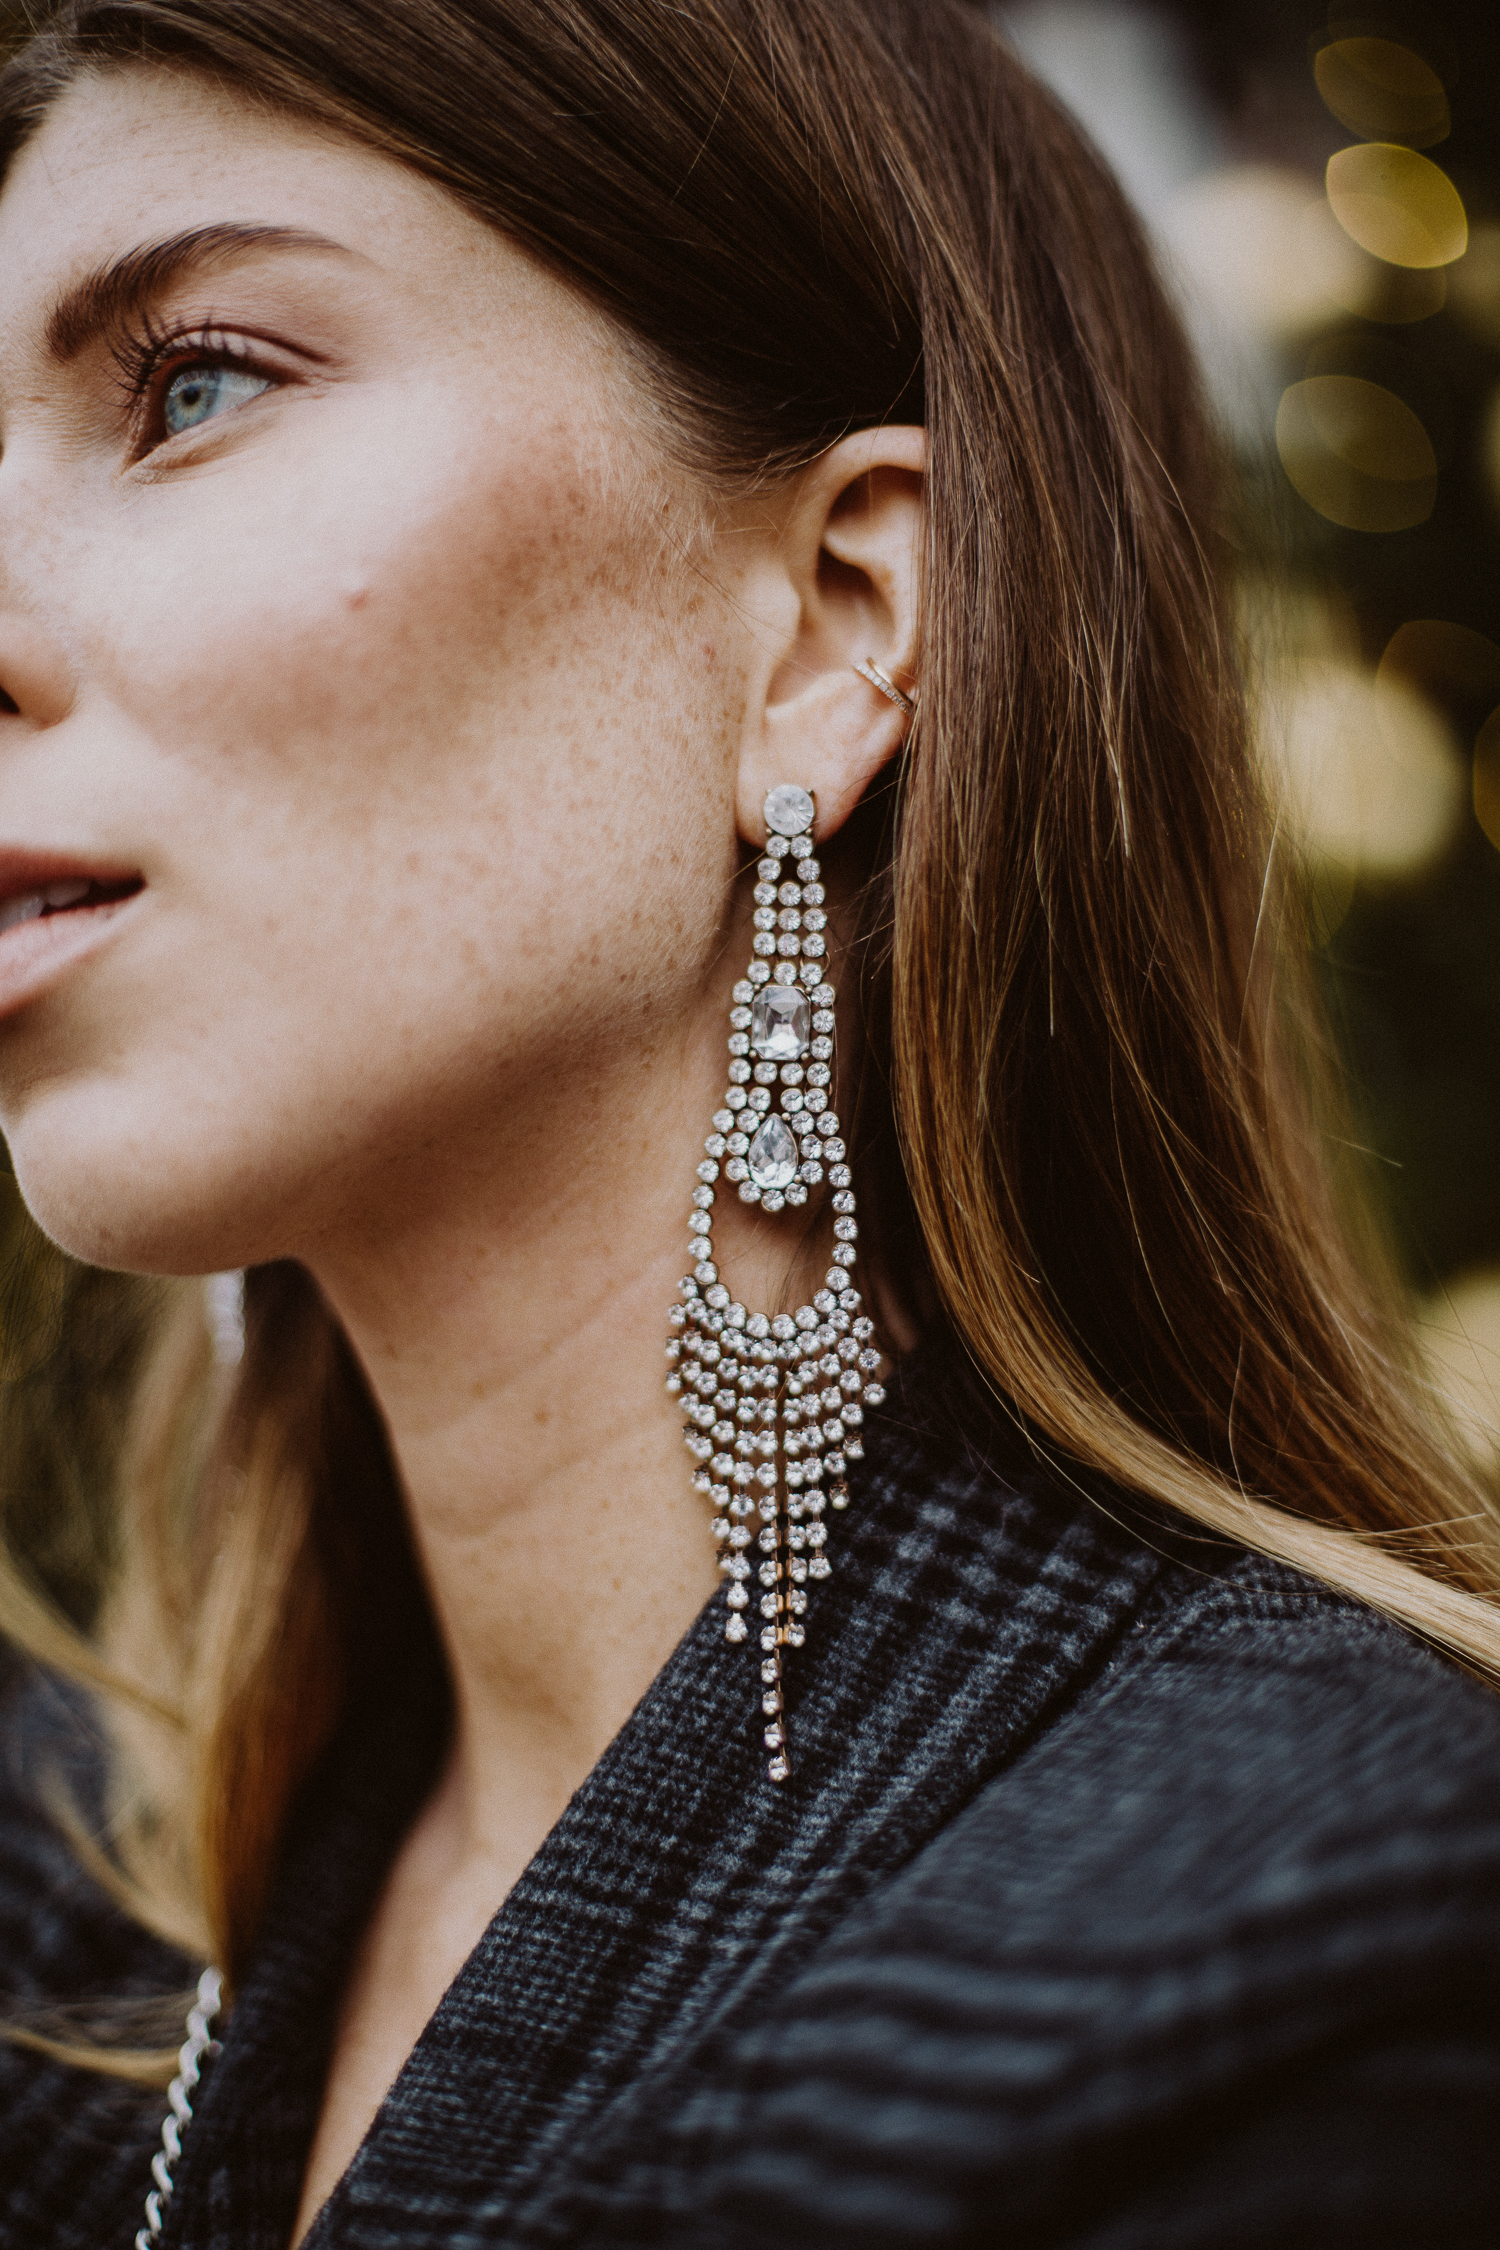 Crystal Earrings for New Year's Eve | Bikinis & Passports